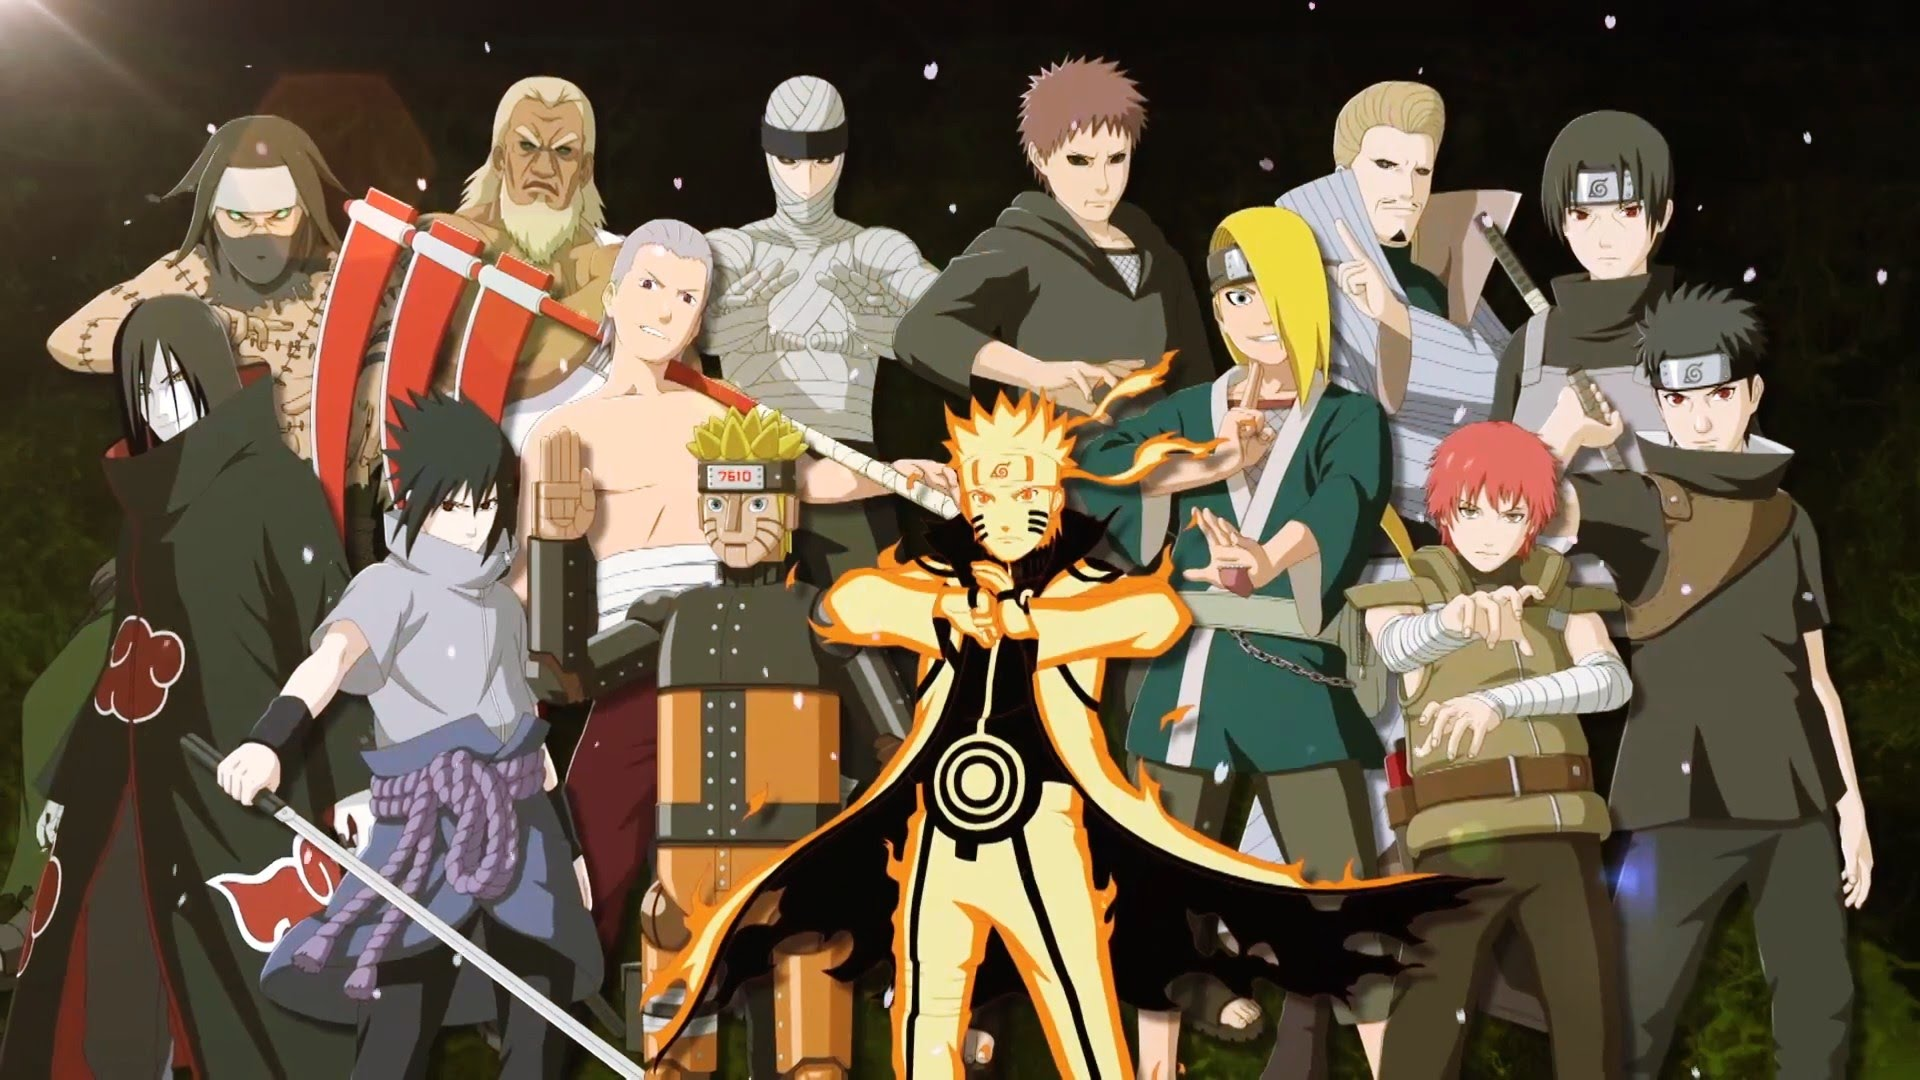 Naruto Shippuden Characters Wallpapers (69+)